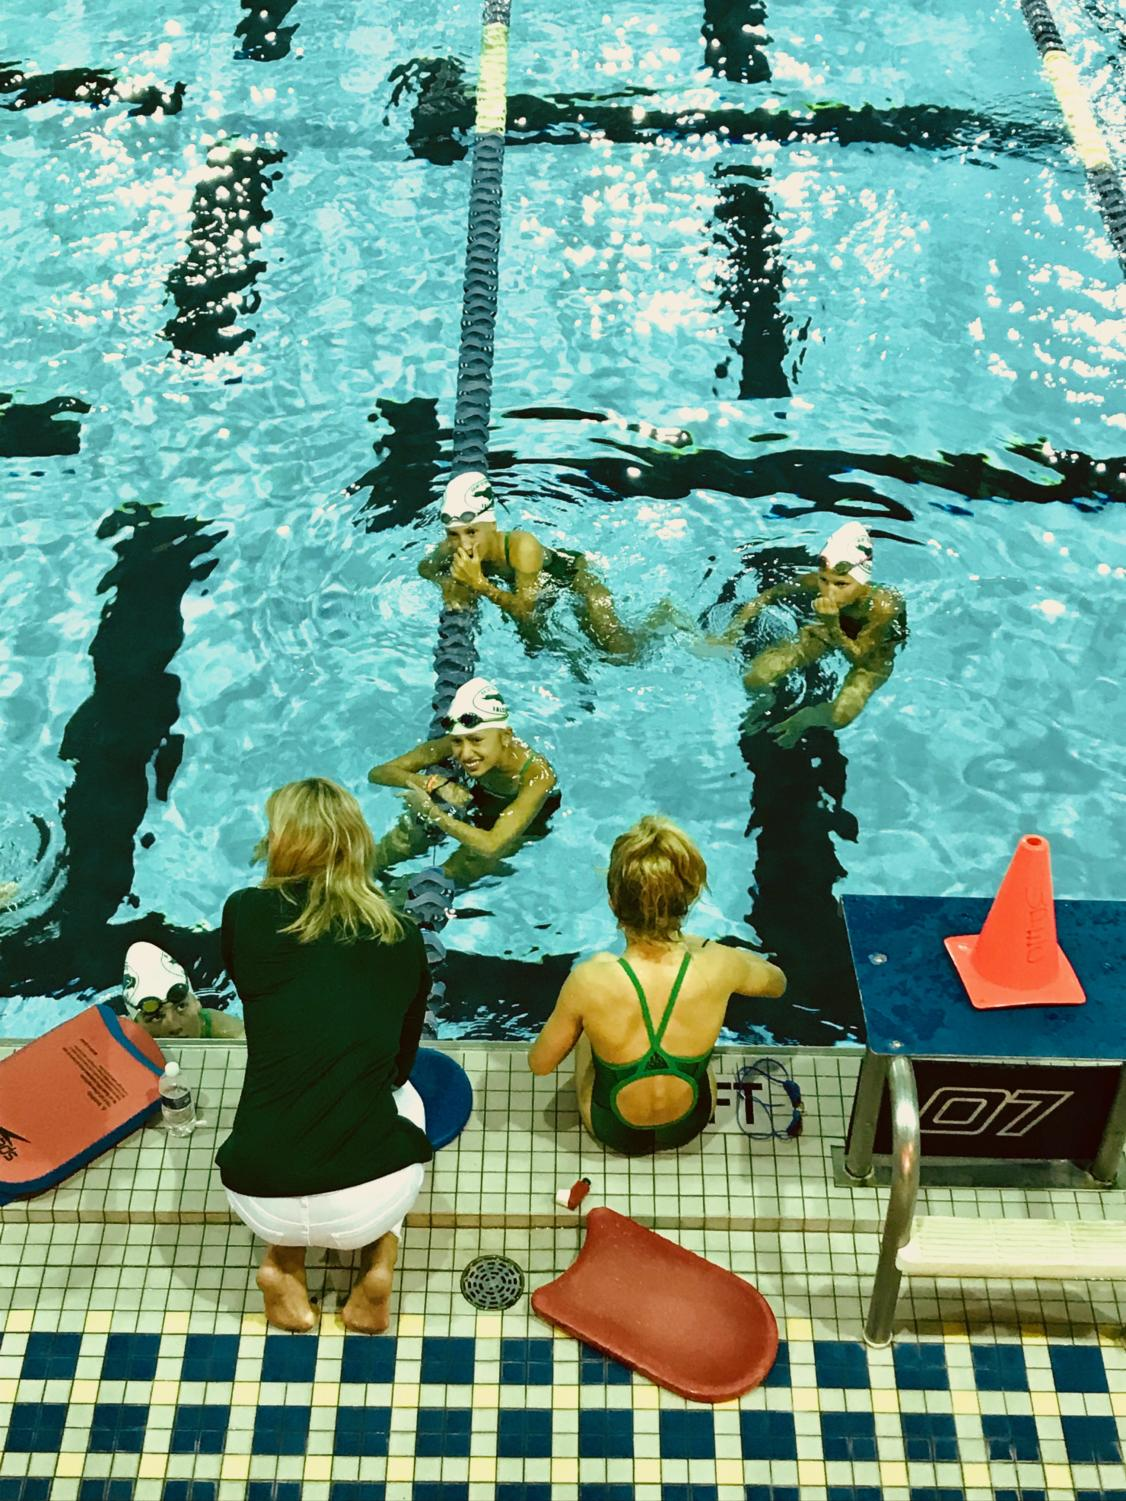 Coach+Sheri+Hart+instructs+a+group+of+swimmers+at+Emory+University%27s+indoor+aquatic+center.